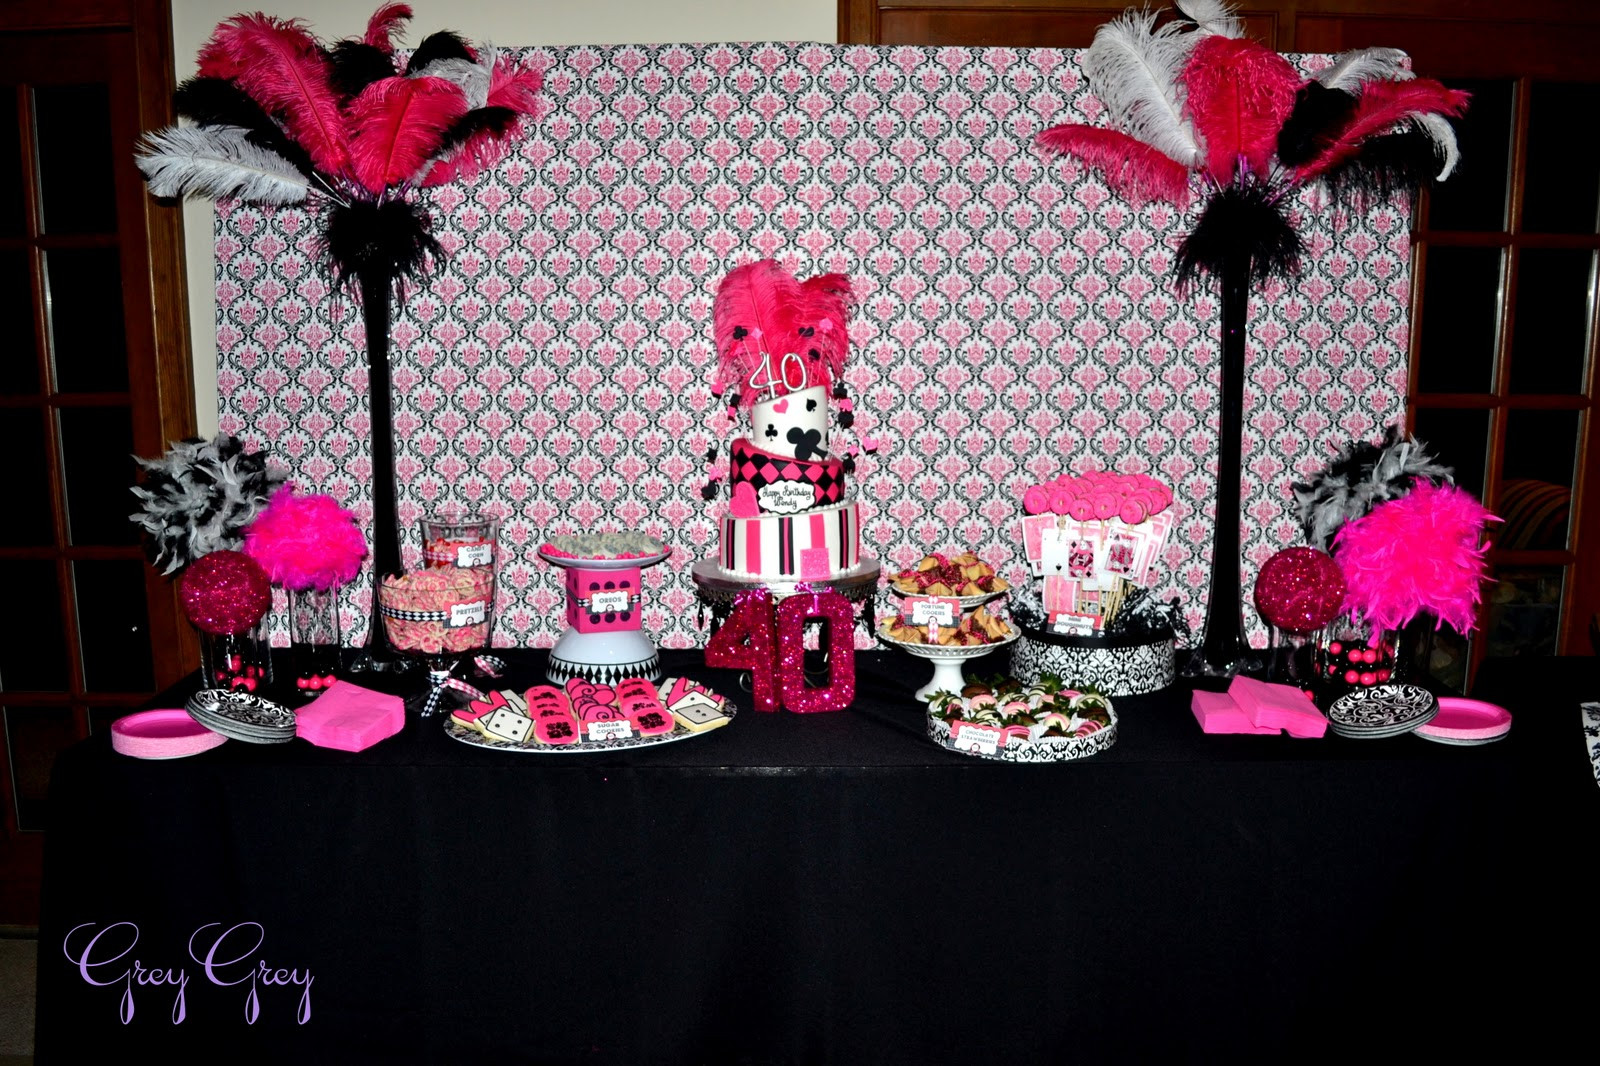 Best ideas about Pink Birthday Party Decorations . Save or Pin GreyGrey Designs My Parties Hot Pink Glamorous Casino Now.